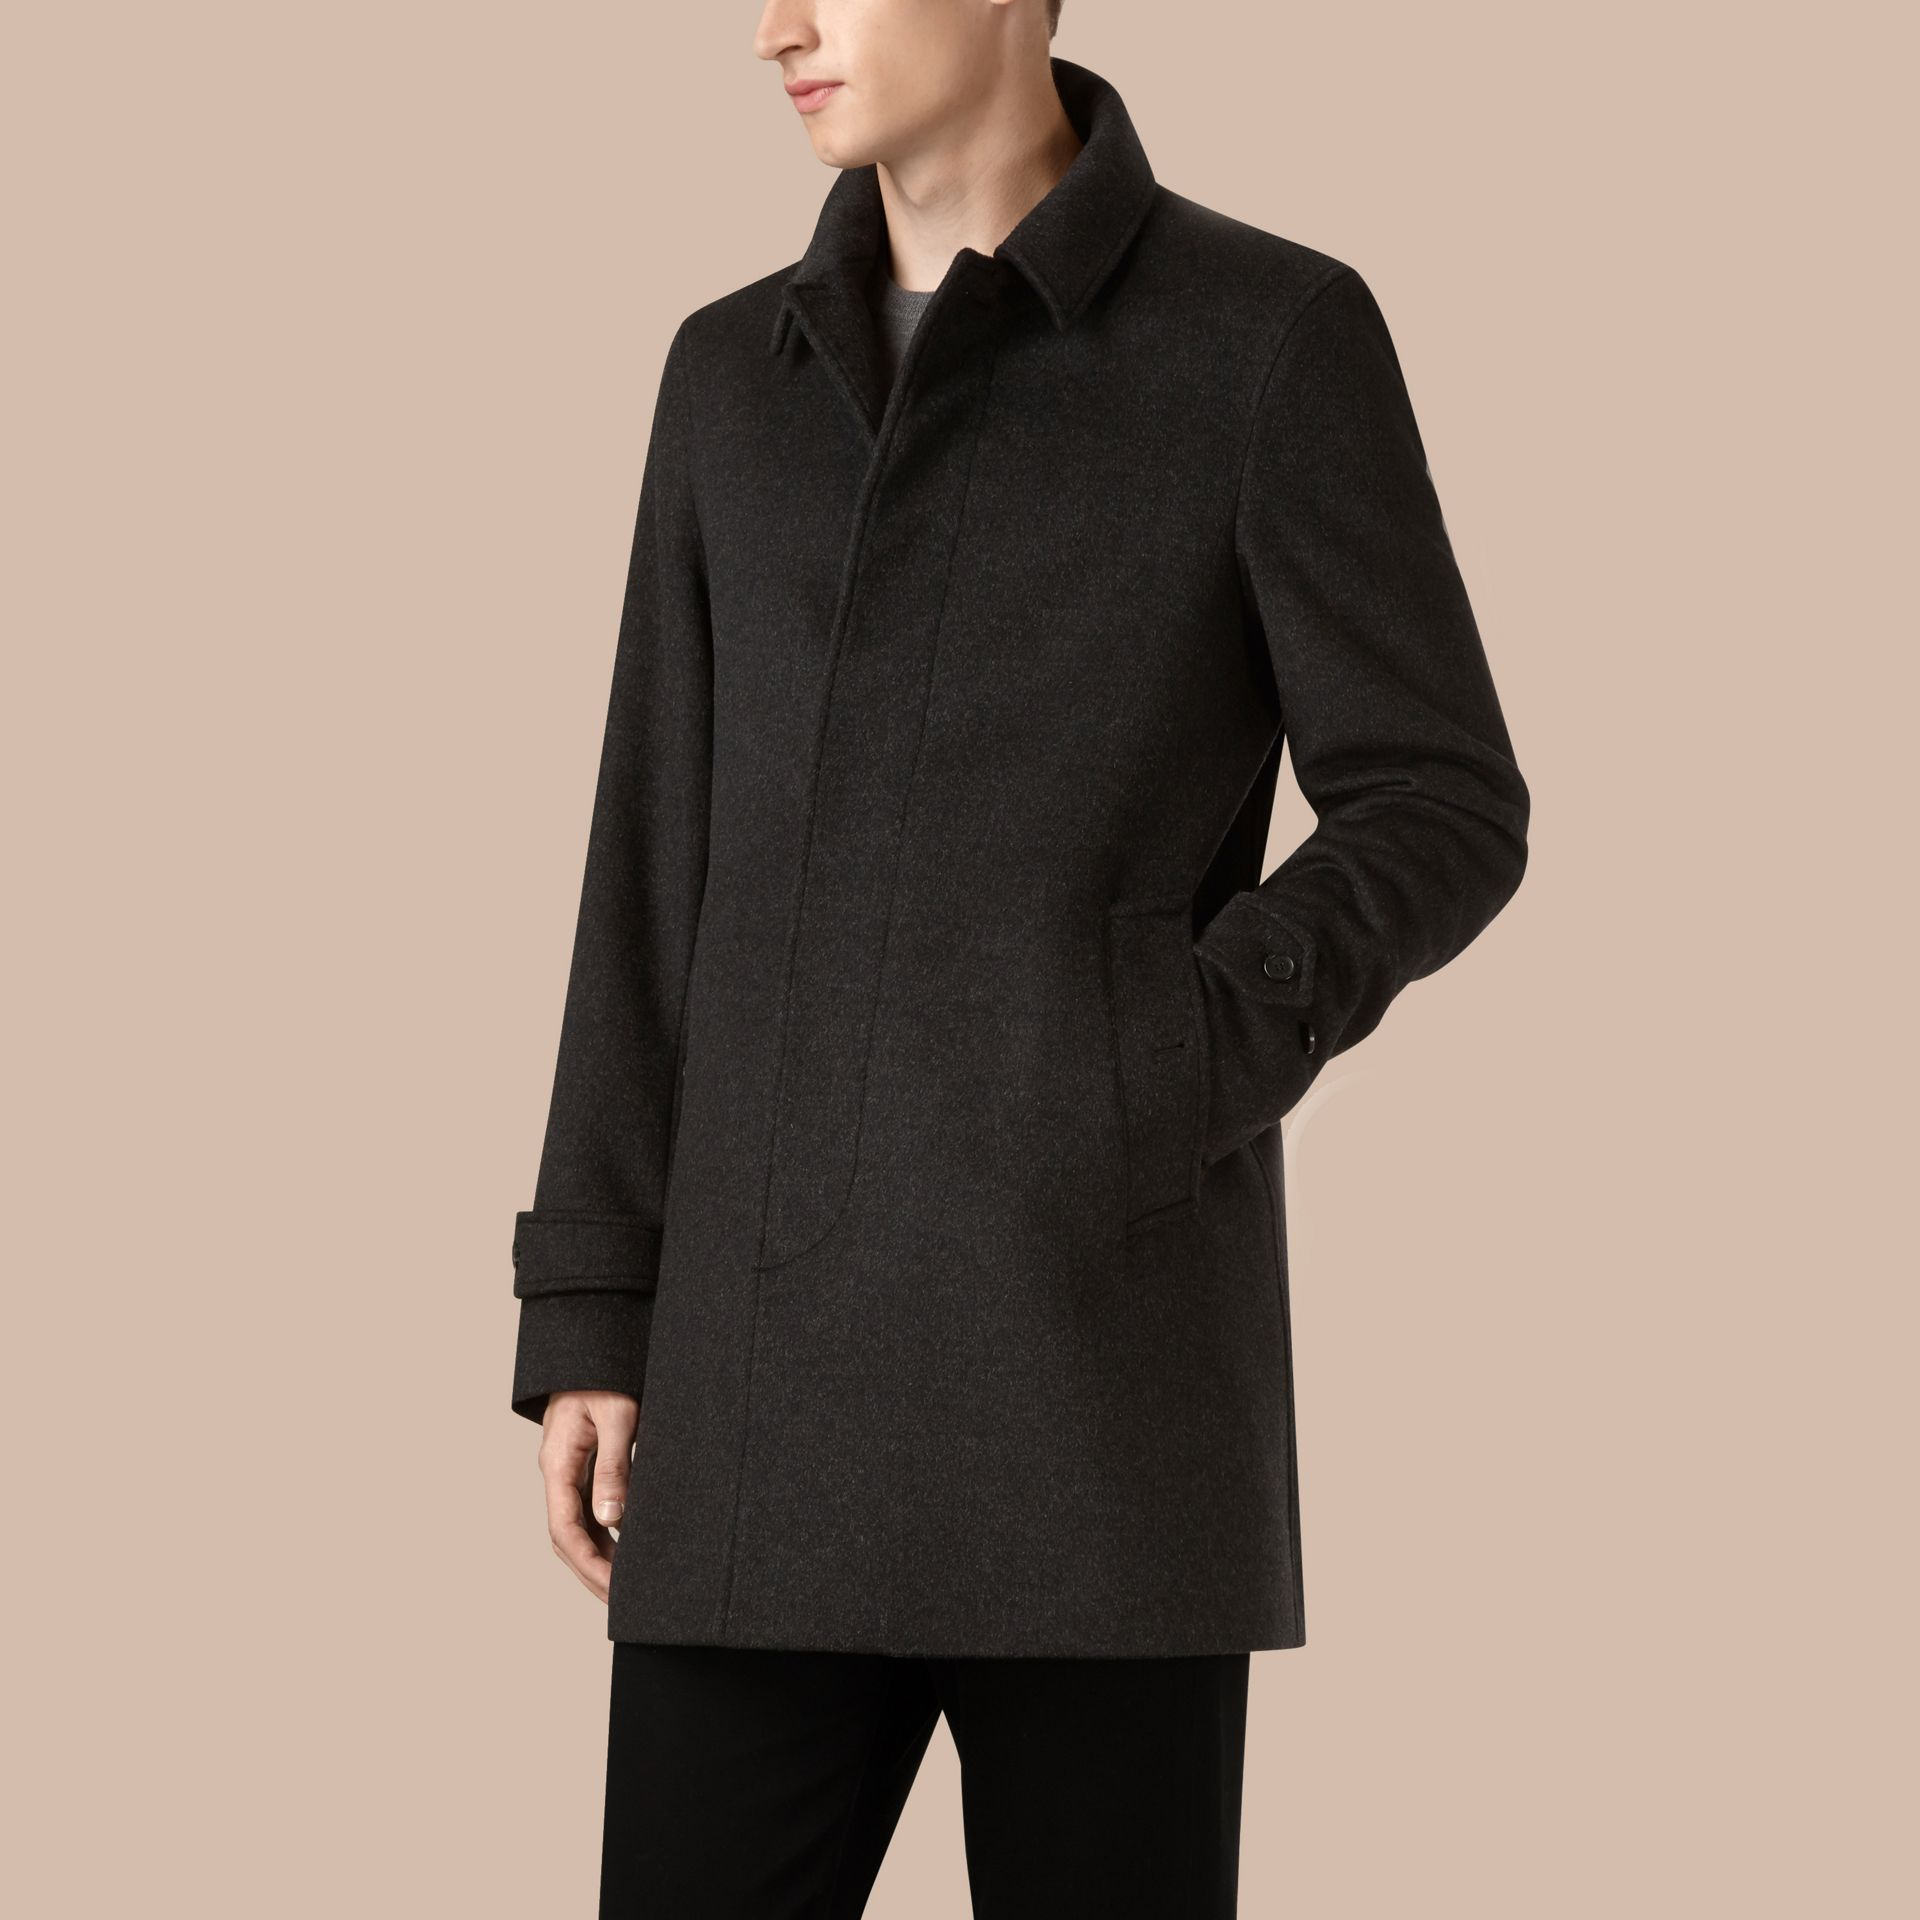 Dark grey melange Virgin Wool Cashmere Car Coat Dark Grey Melange - gallery image 4